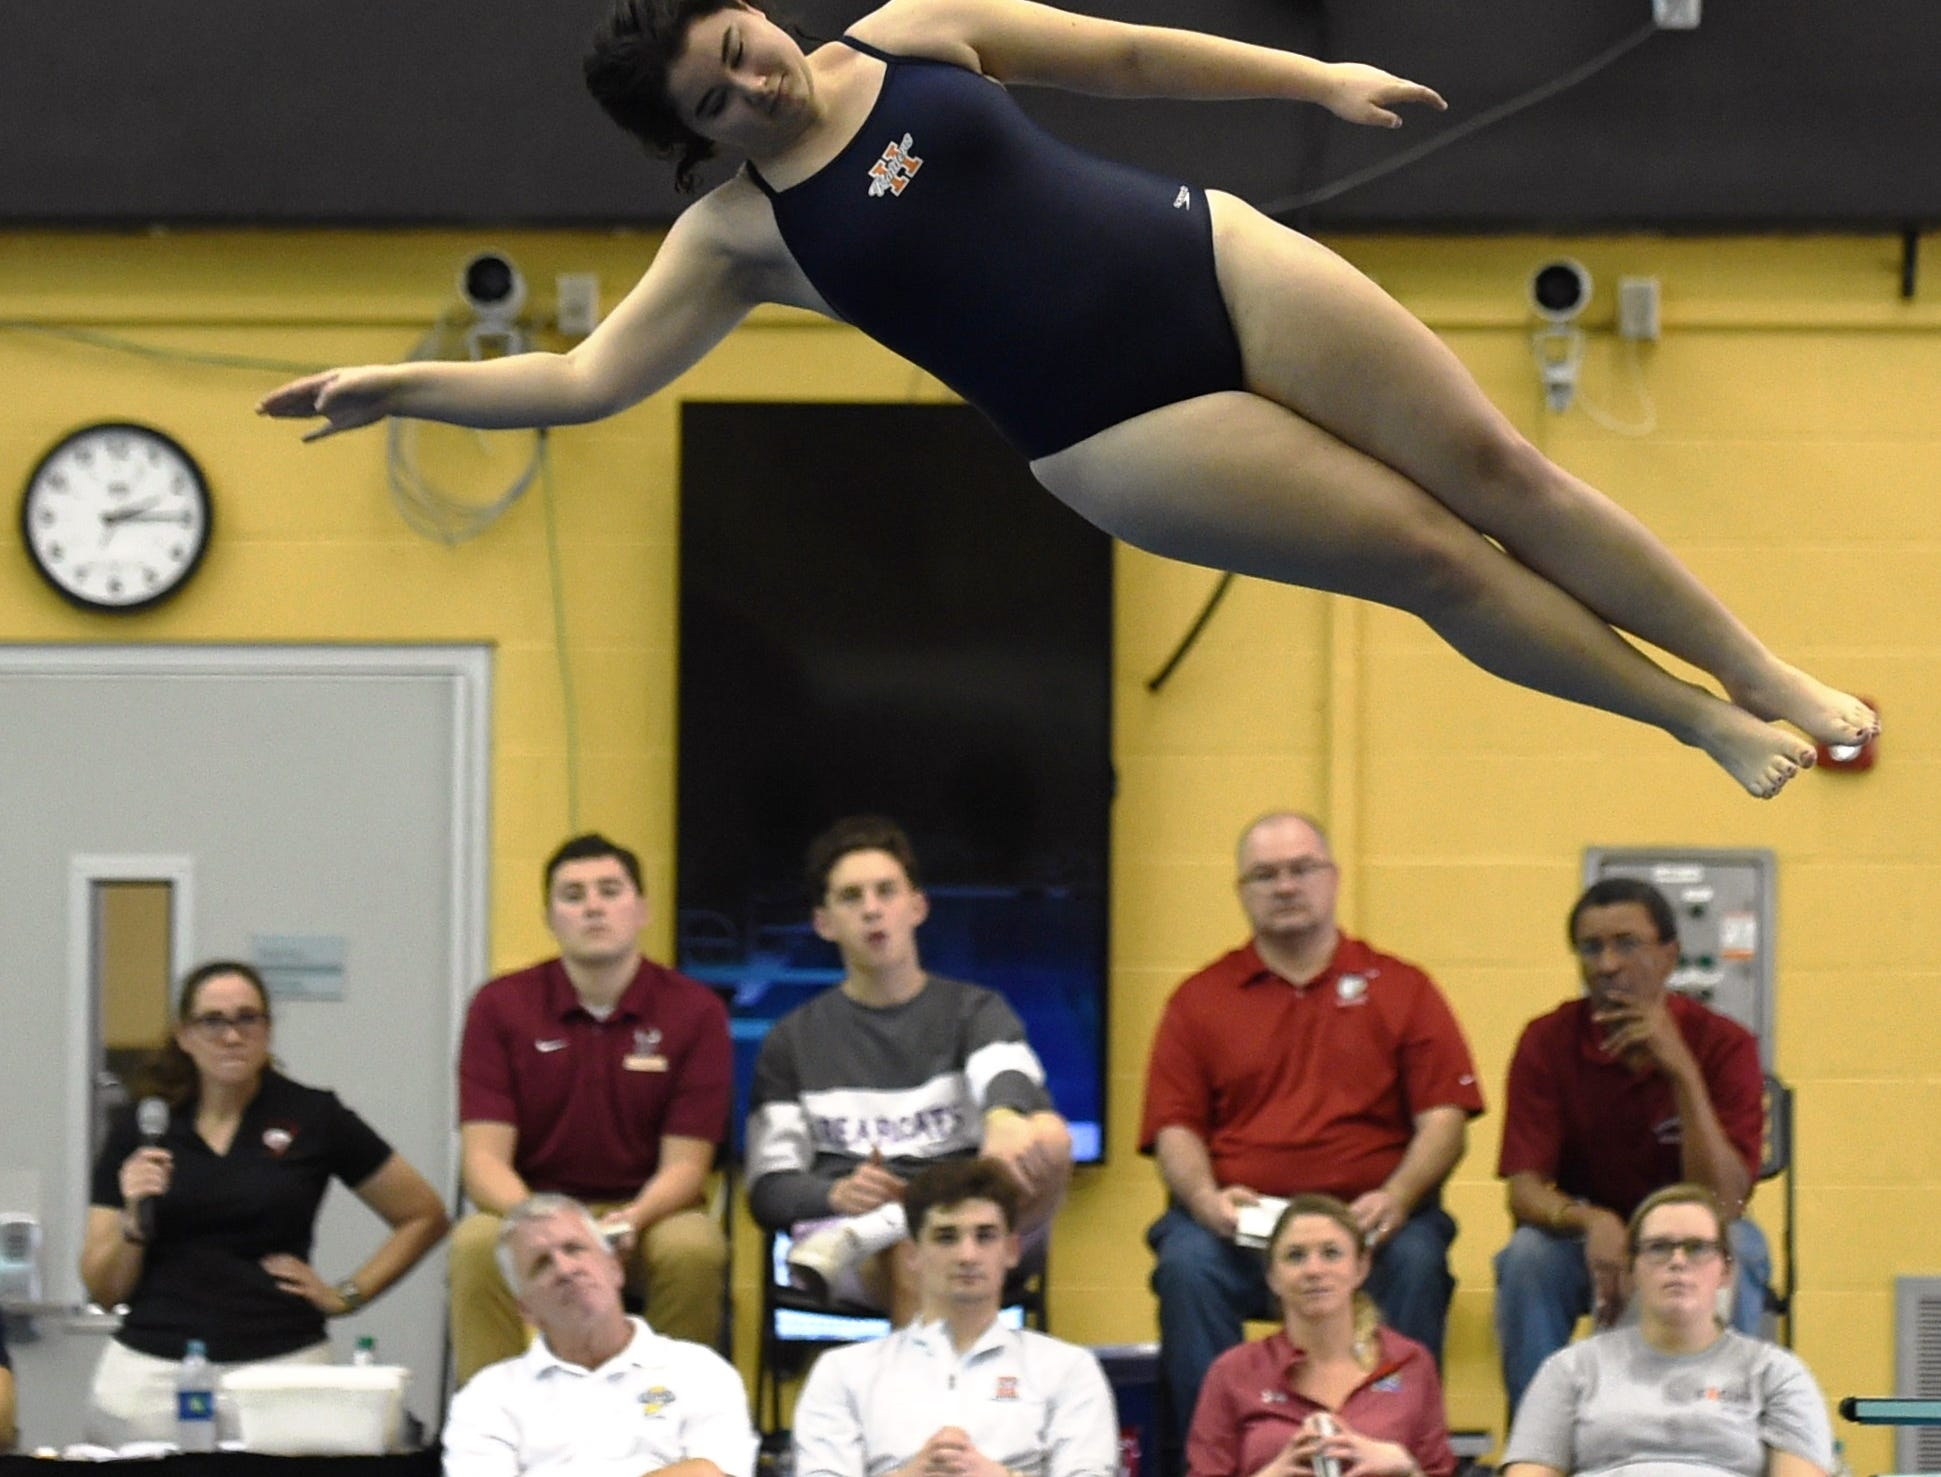 Images from Saturday's North Central Conference Swimming and Diving Championships at Purdue. Lauren Smith.